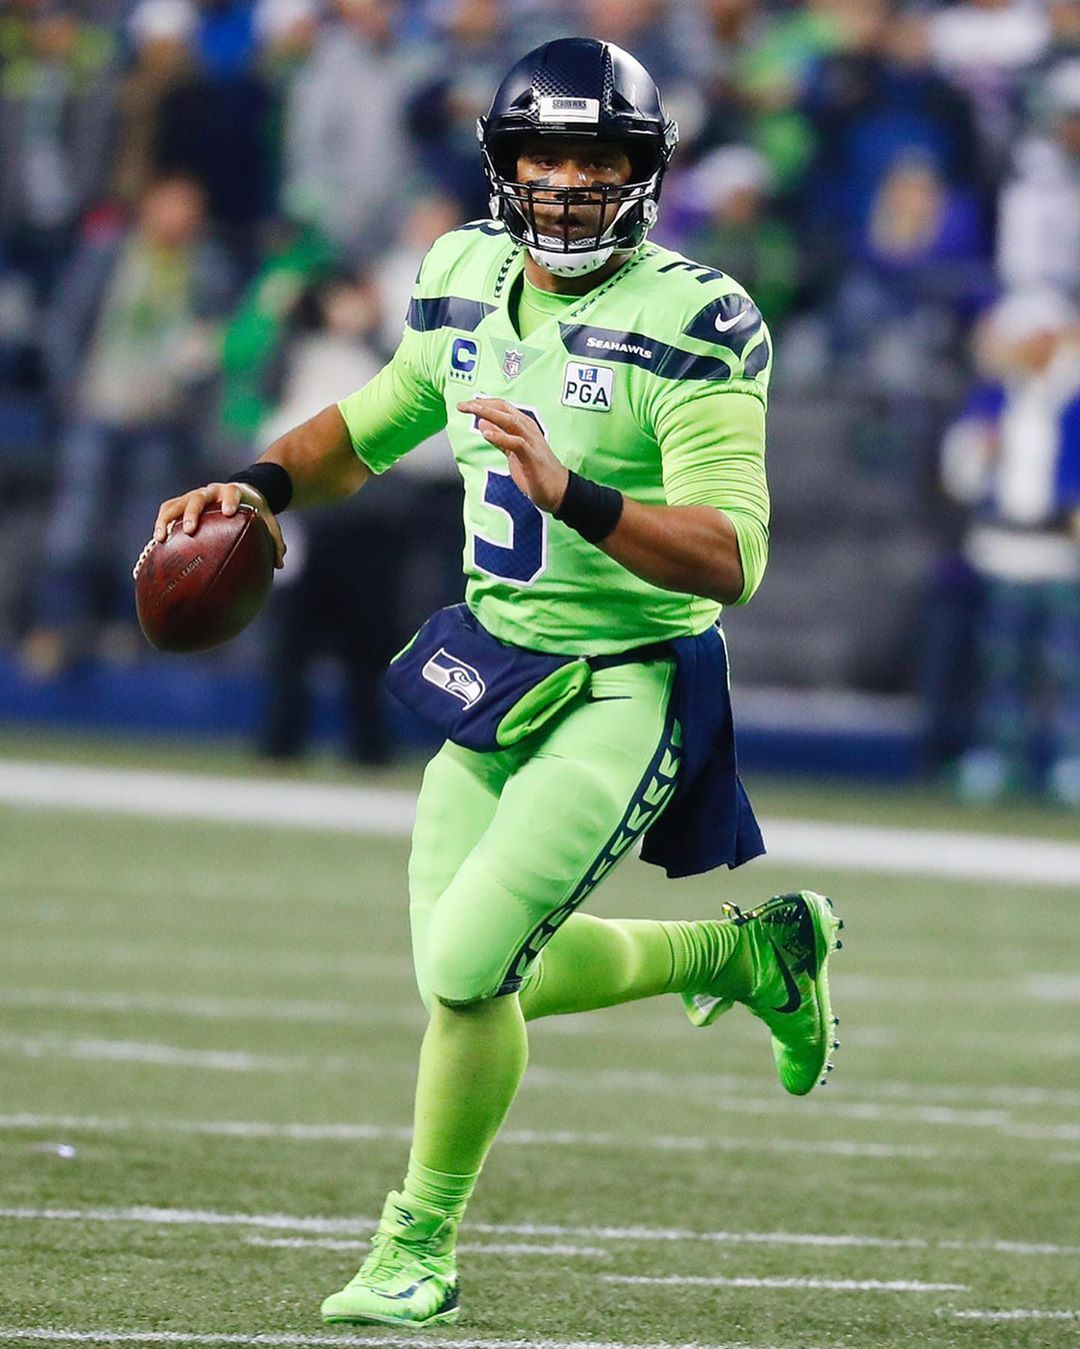 NFL The seahawks are bringing back the Action Green